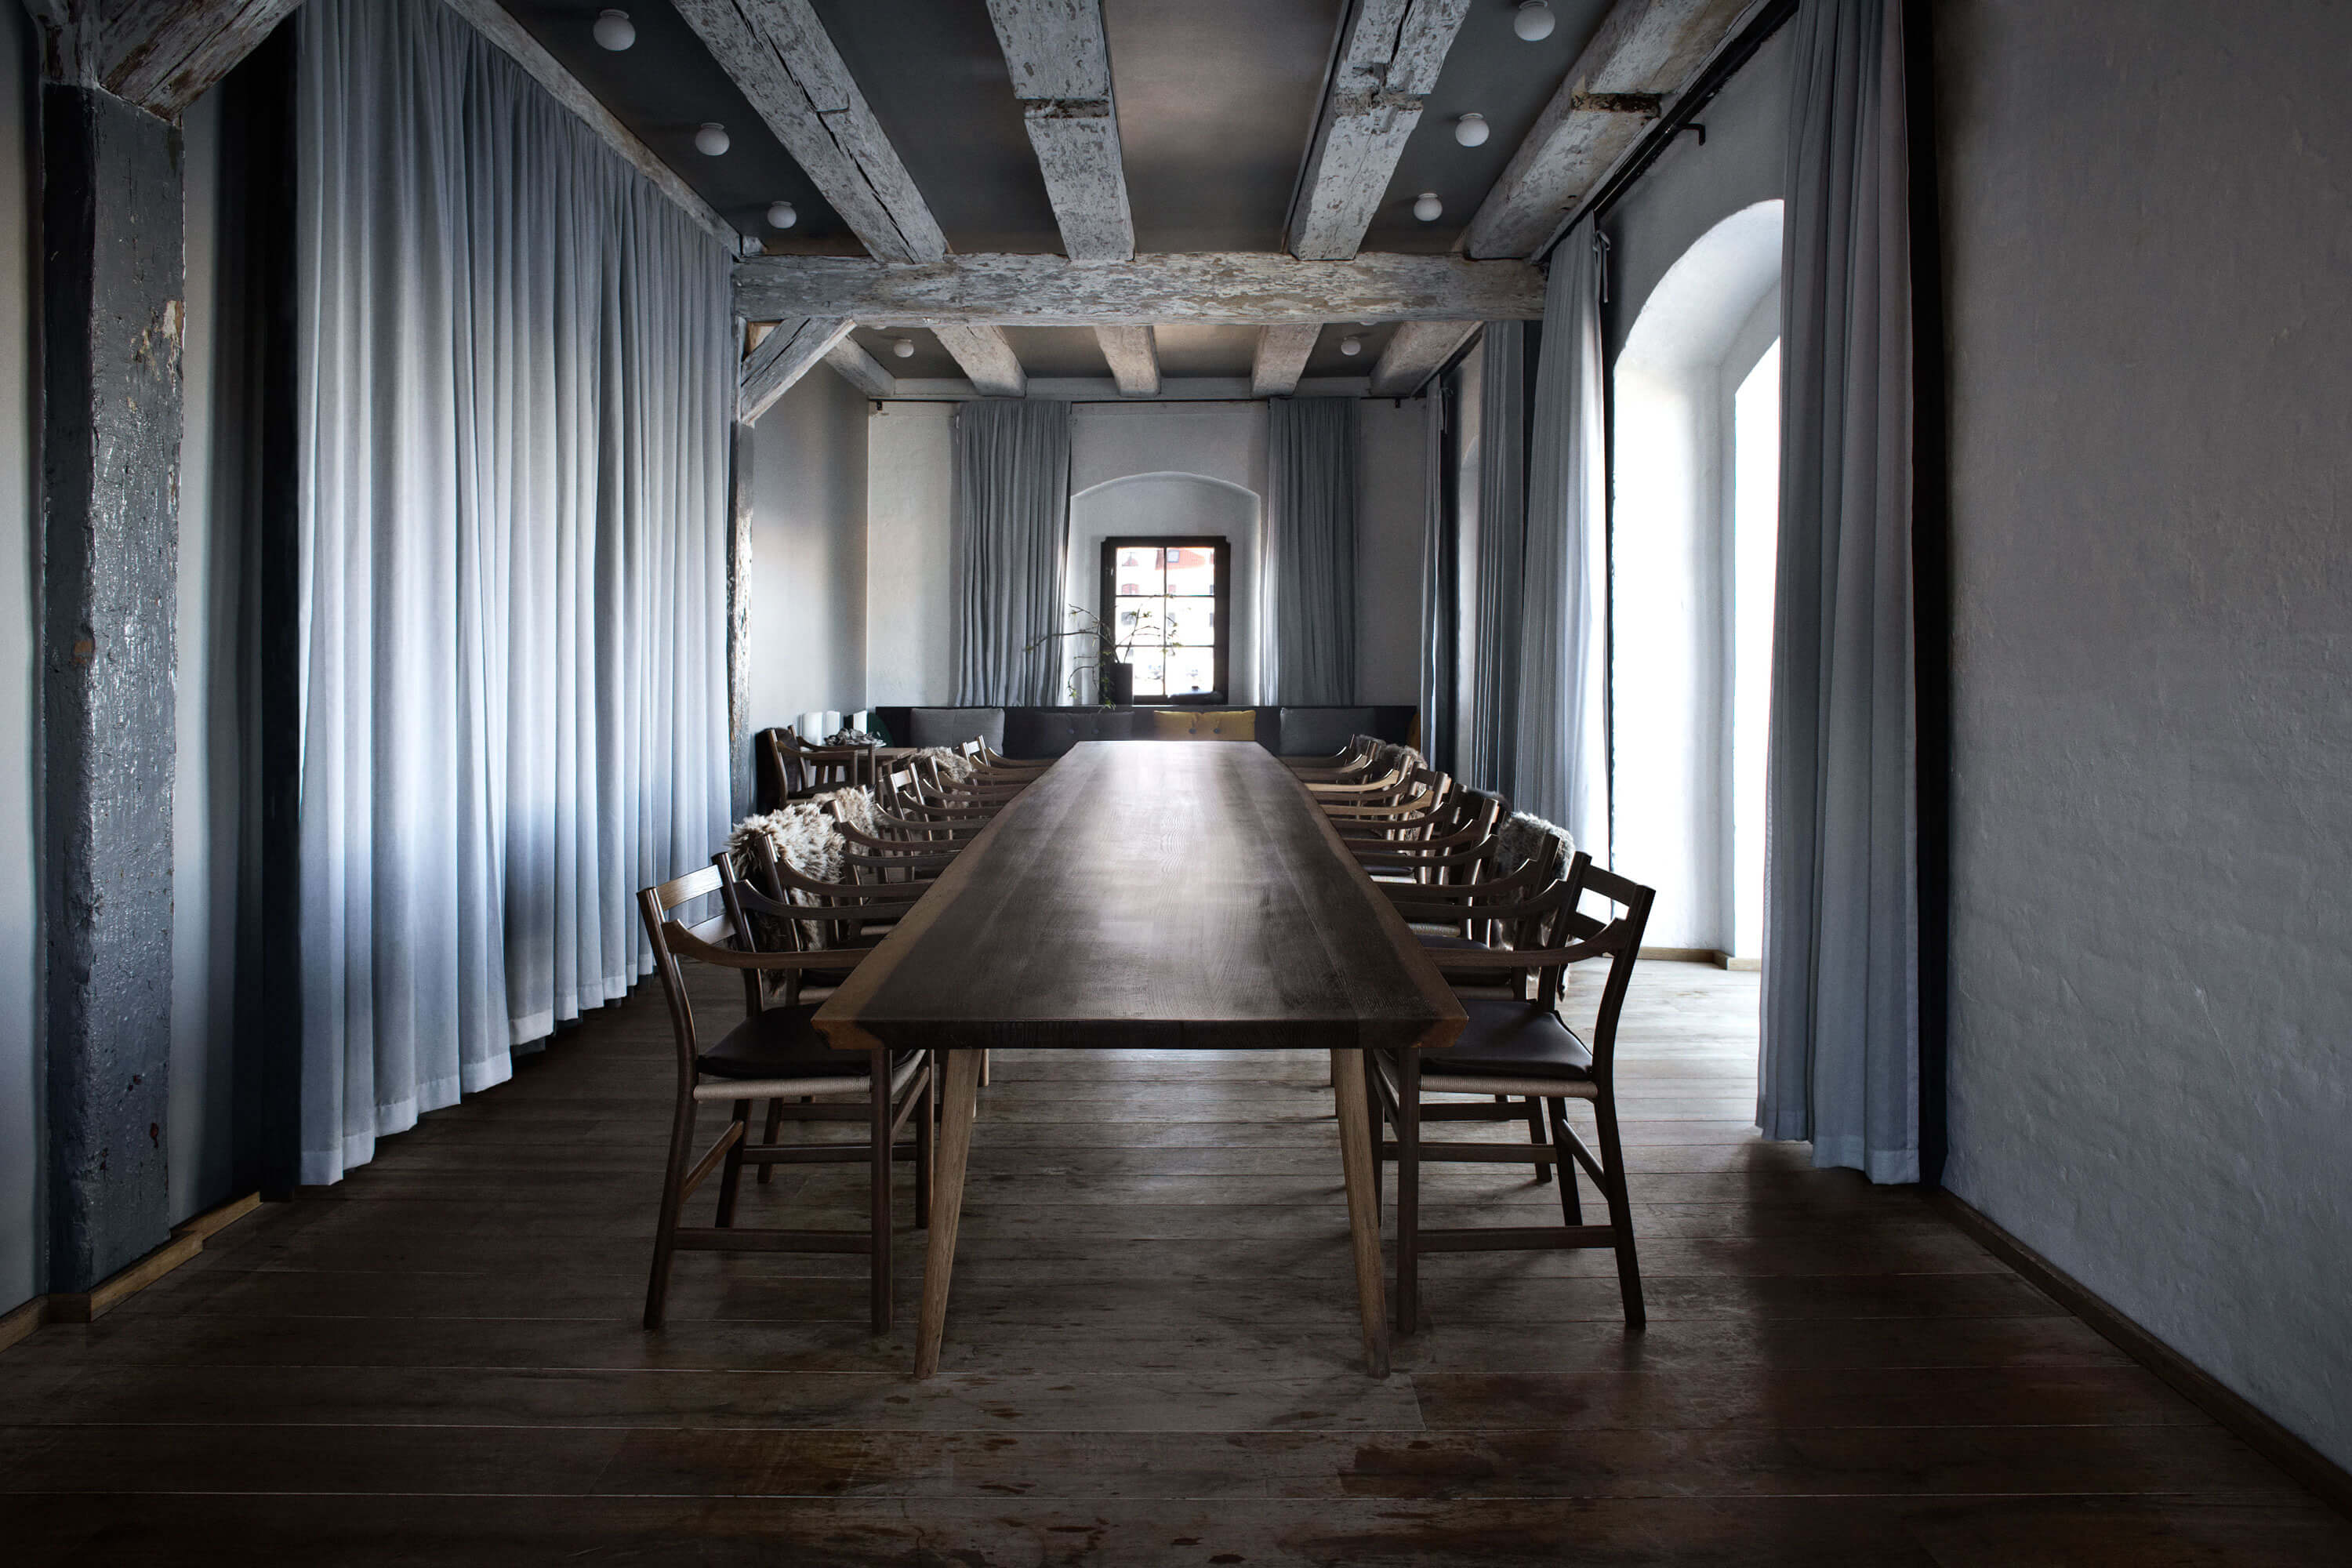 Colour photo of long wooden table with 14 wooden chairs in industrial room with curtains on one side and window on other side